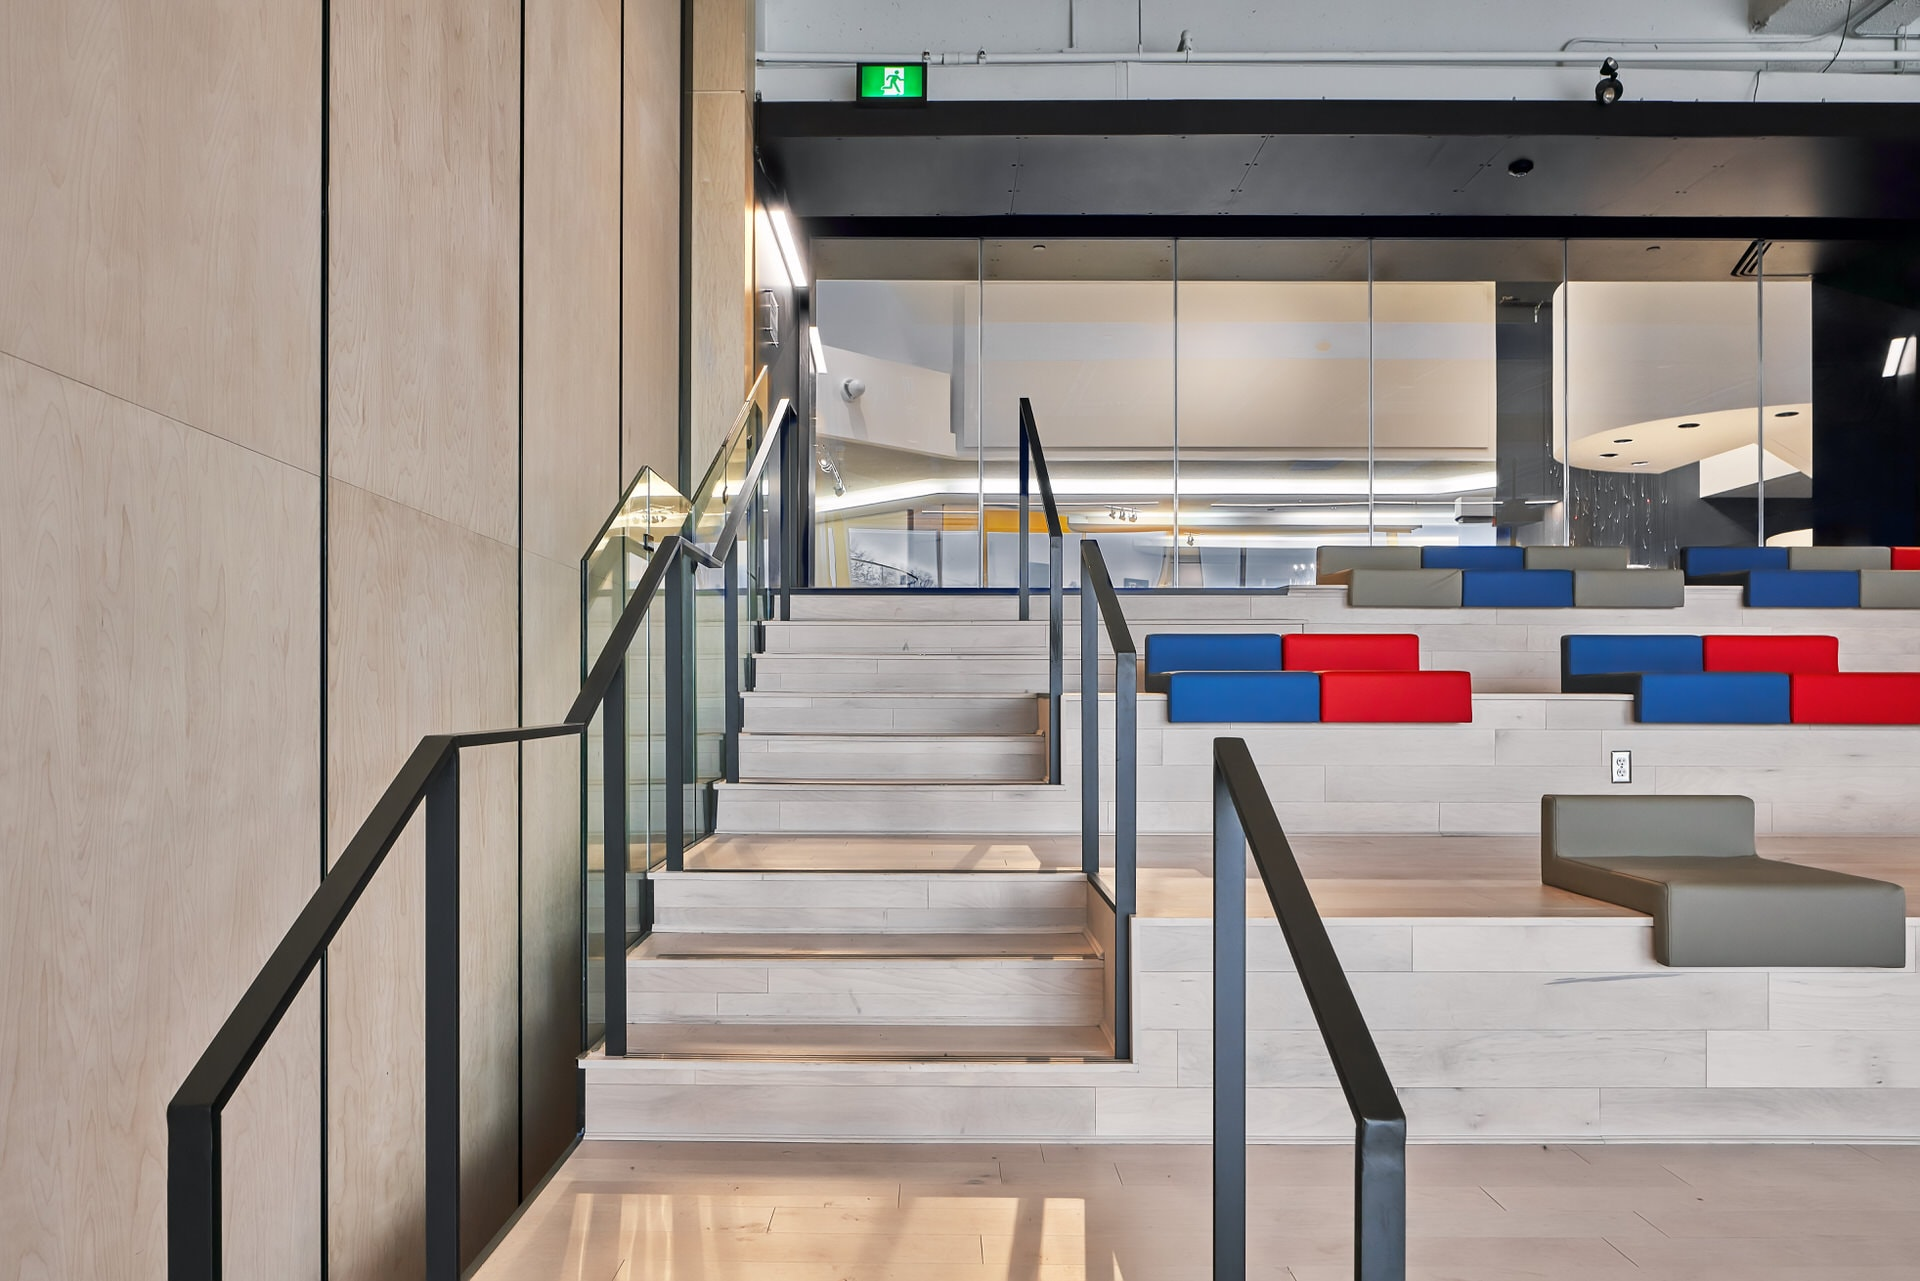 Interior Architectural Photo of staircase